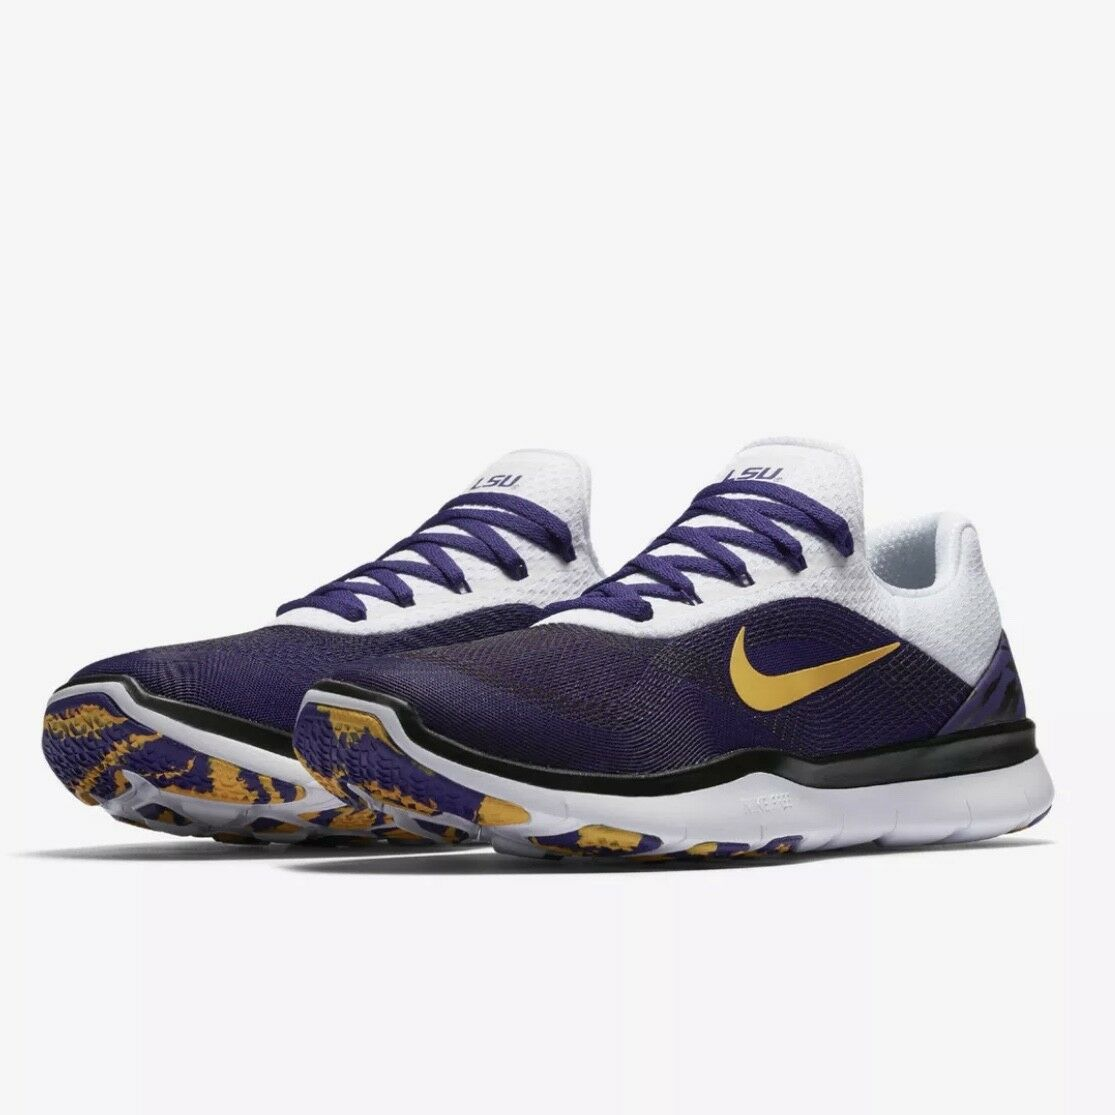 Nike Free Trainer V7 Week Zero Court Purple University gold (AA0881 500) Sz 10.5